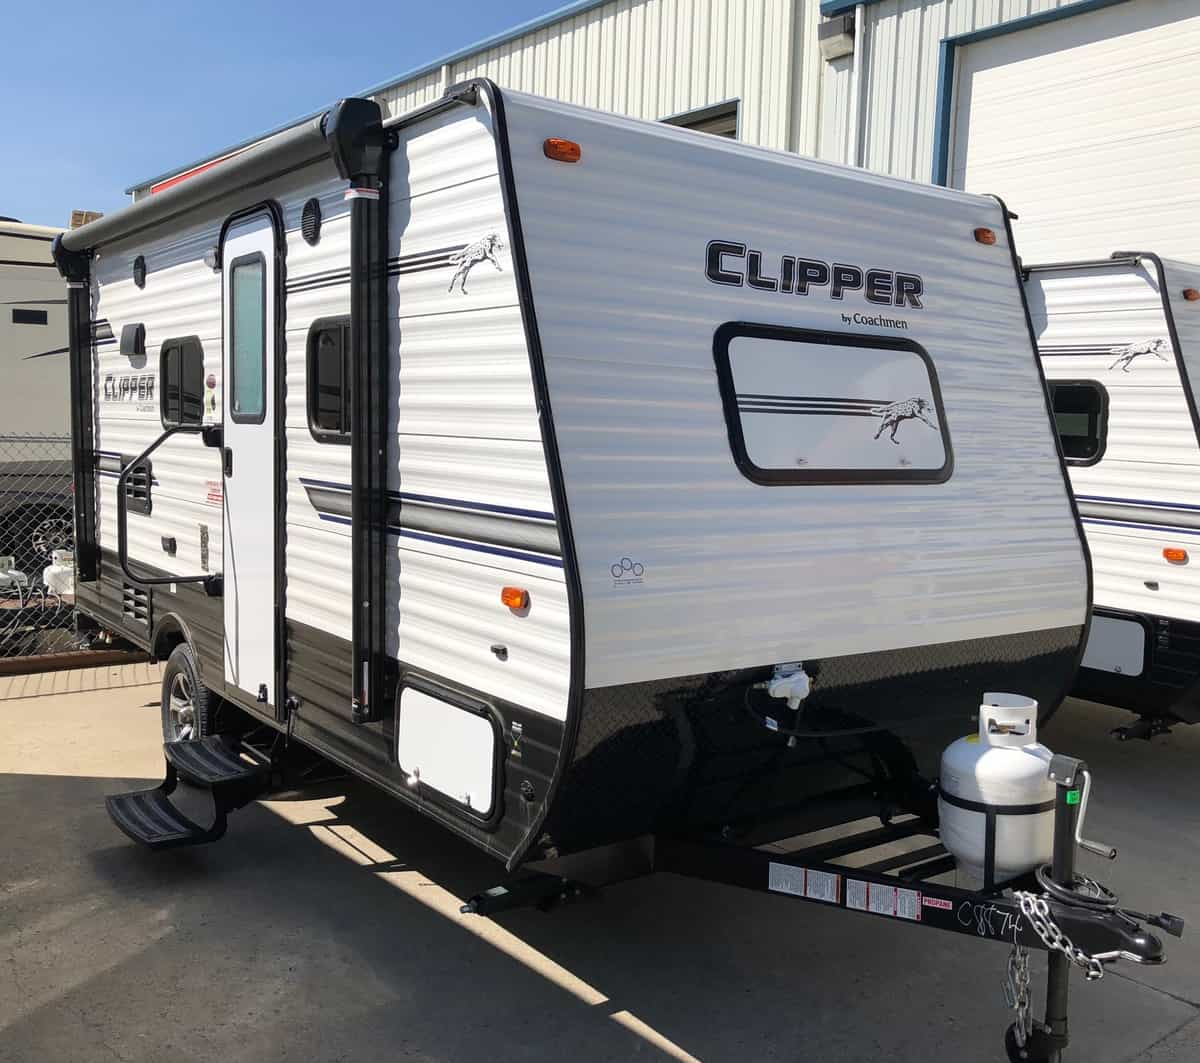 NEW 2018 Forest River CLIPPER 17 FQ